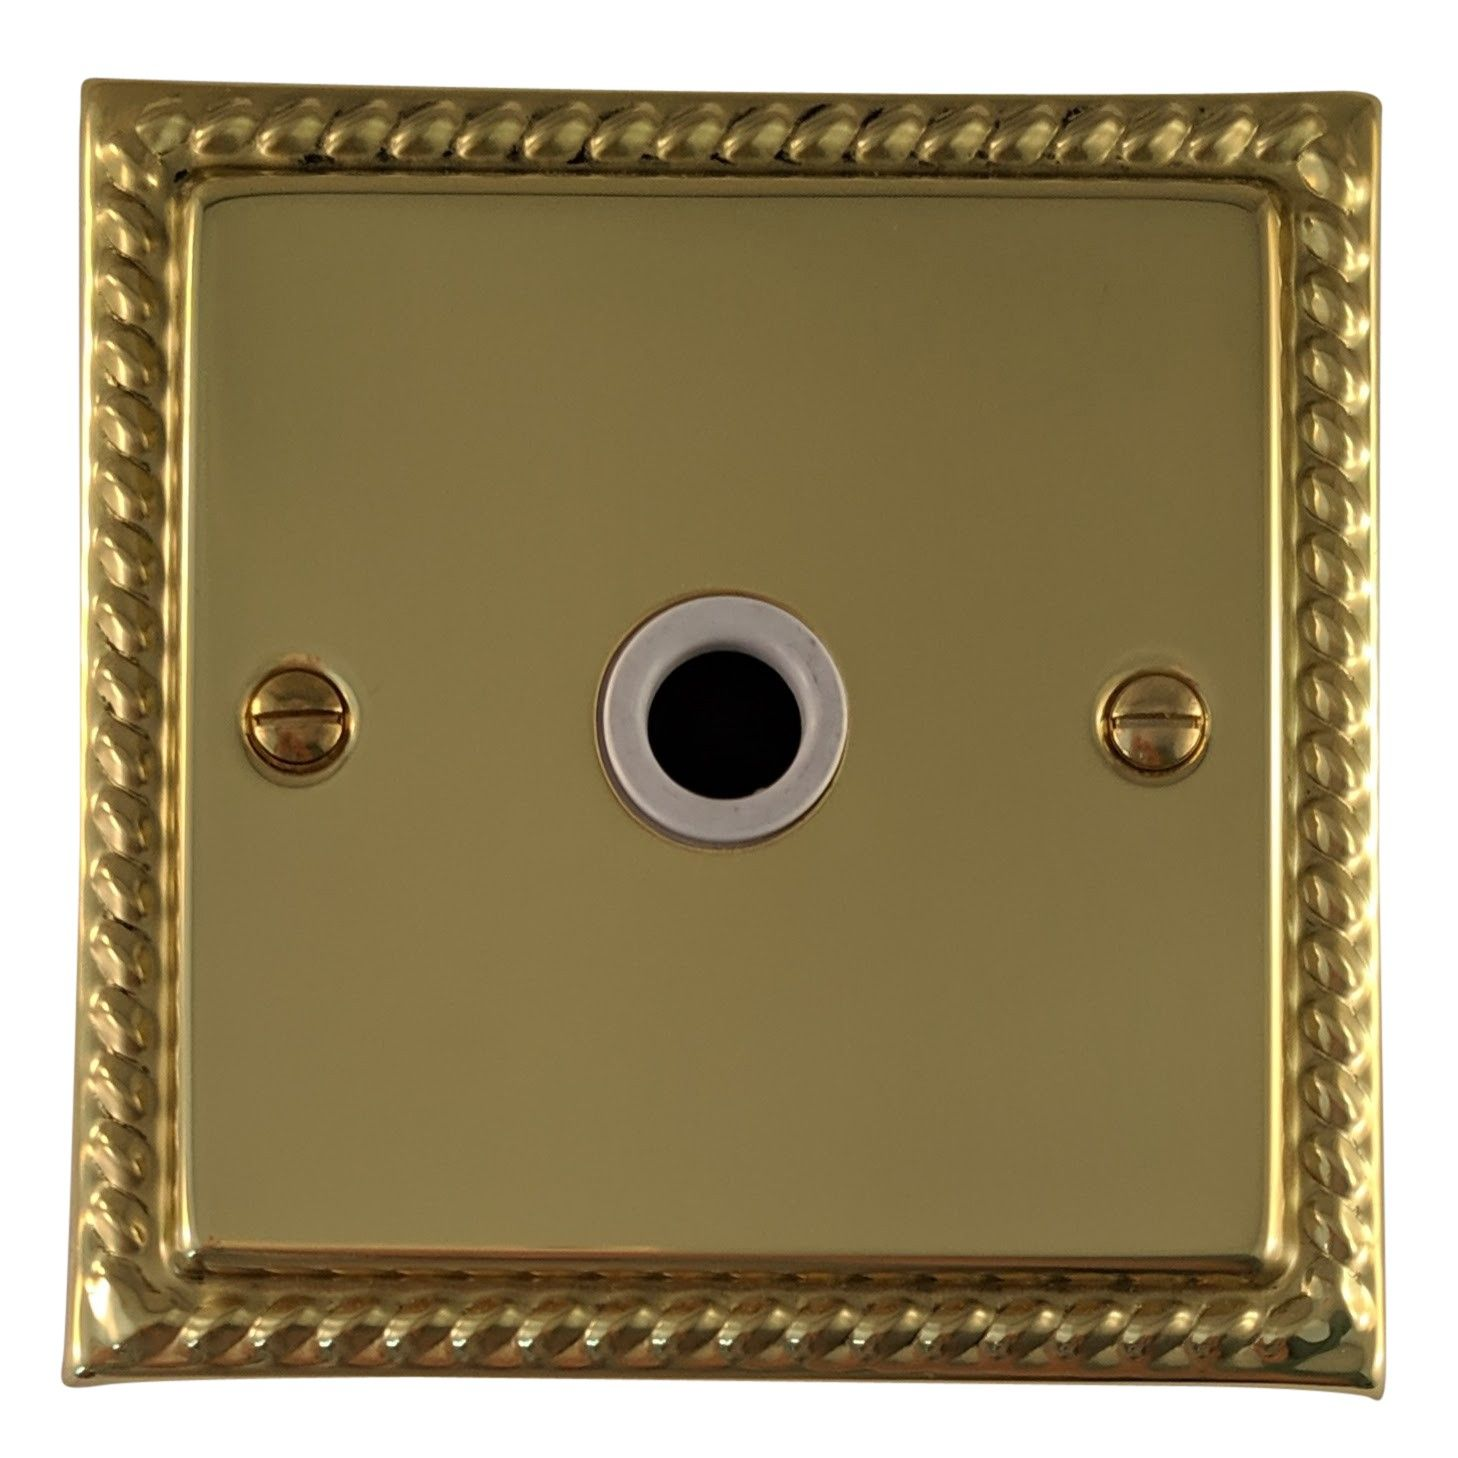 G&H MB79W Monarch Roped Polished Brass 1 Gang Flex Outlet Plate